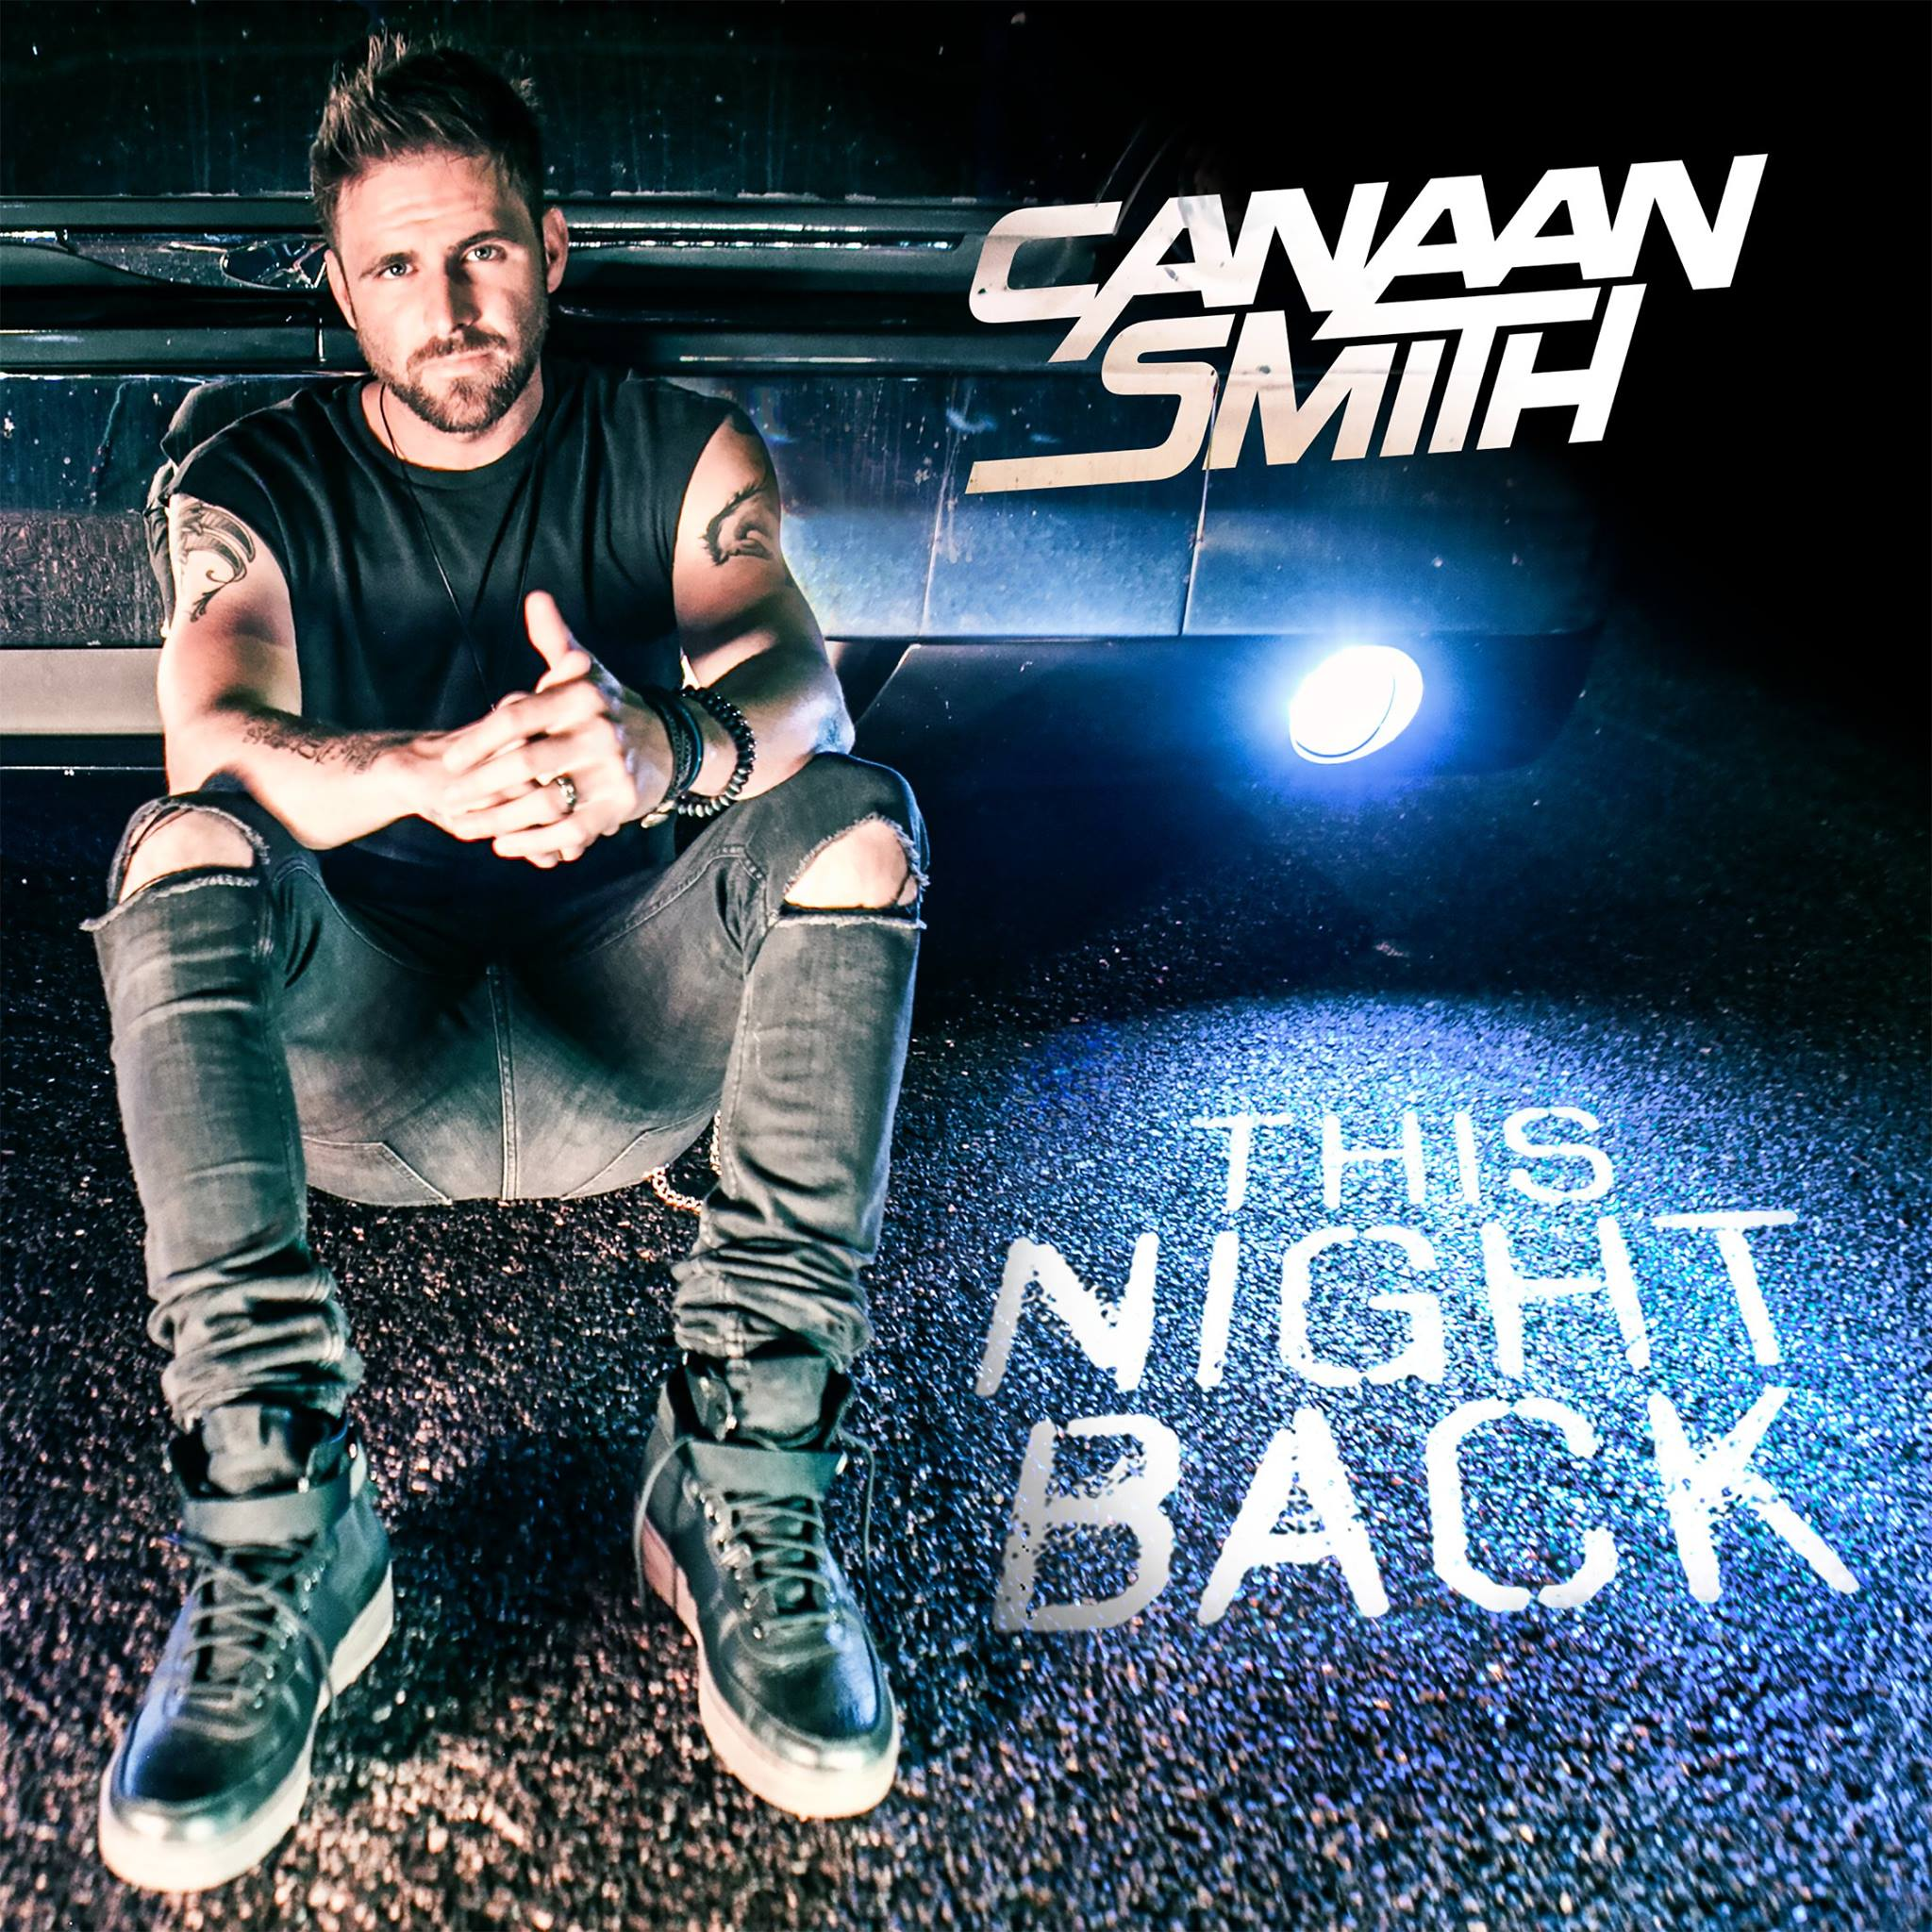 Canaan Smith, 'This Night Back' | Track Review